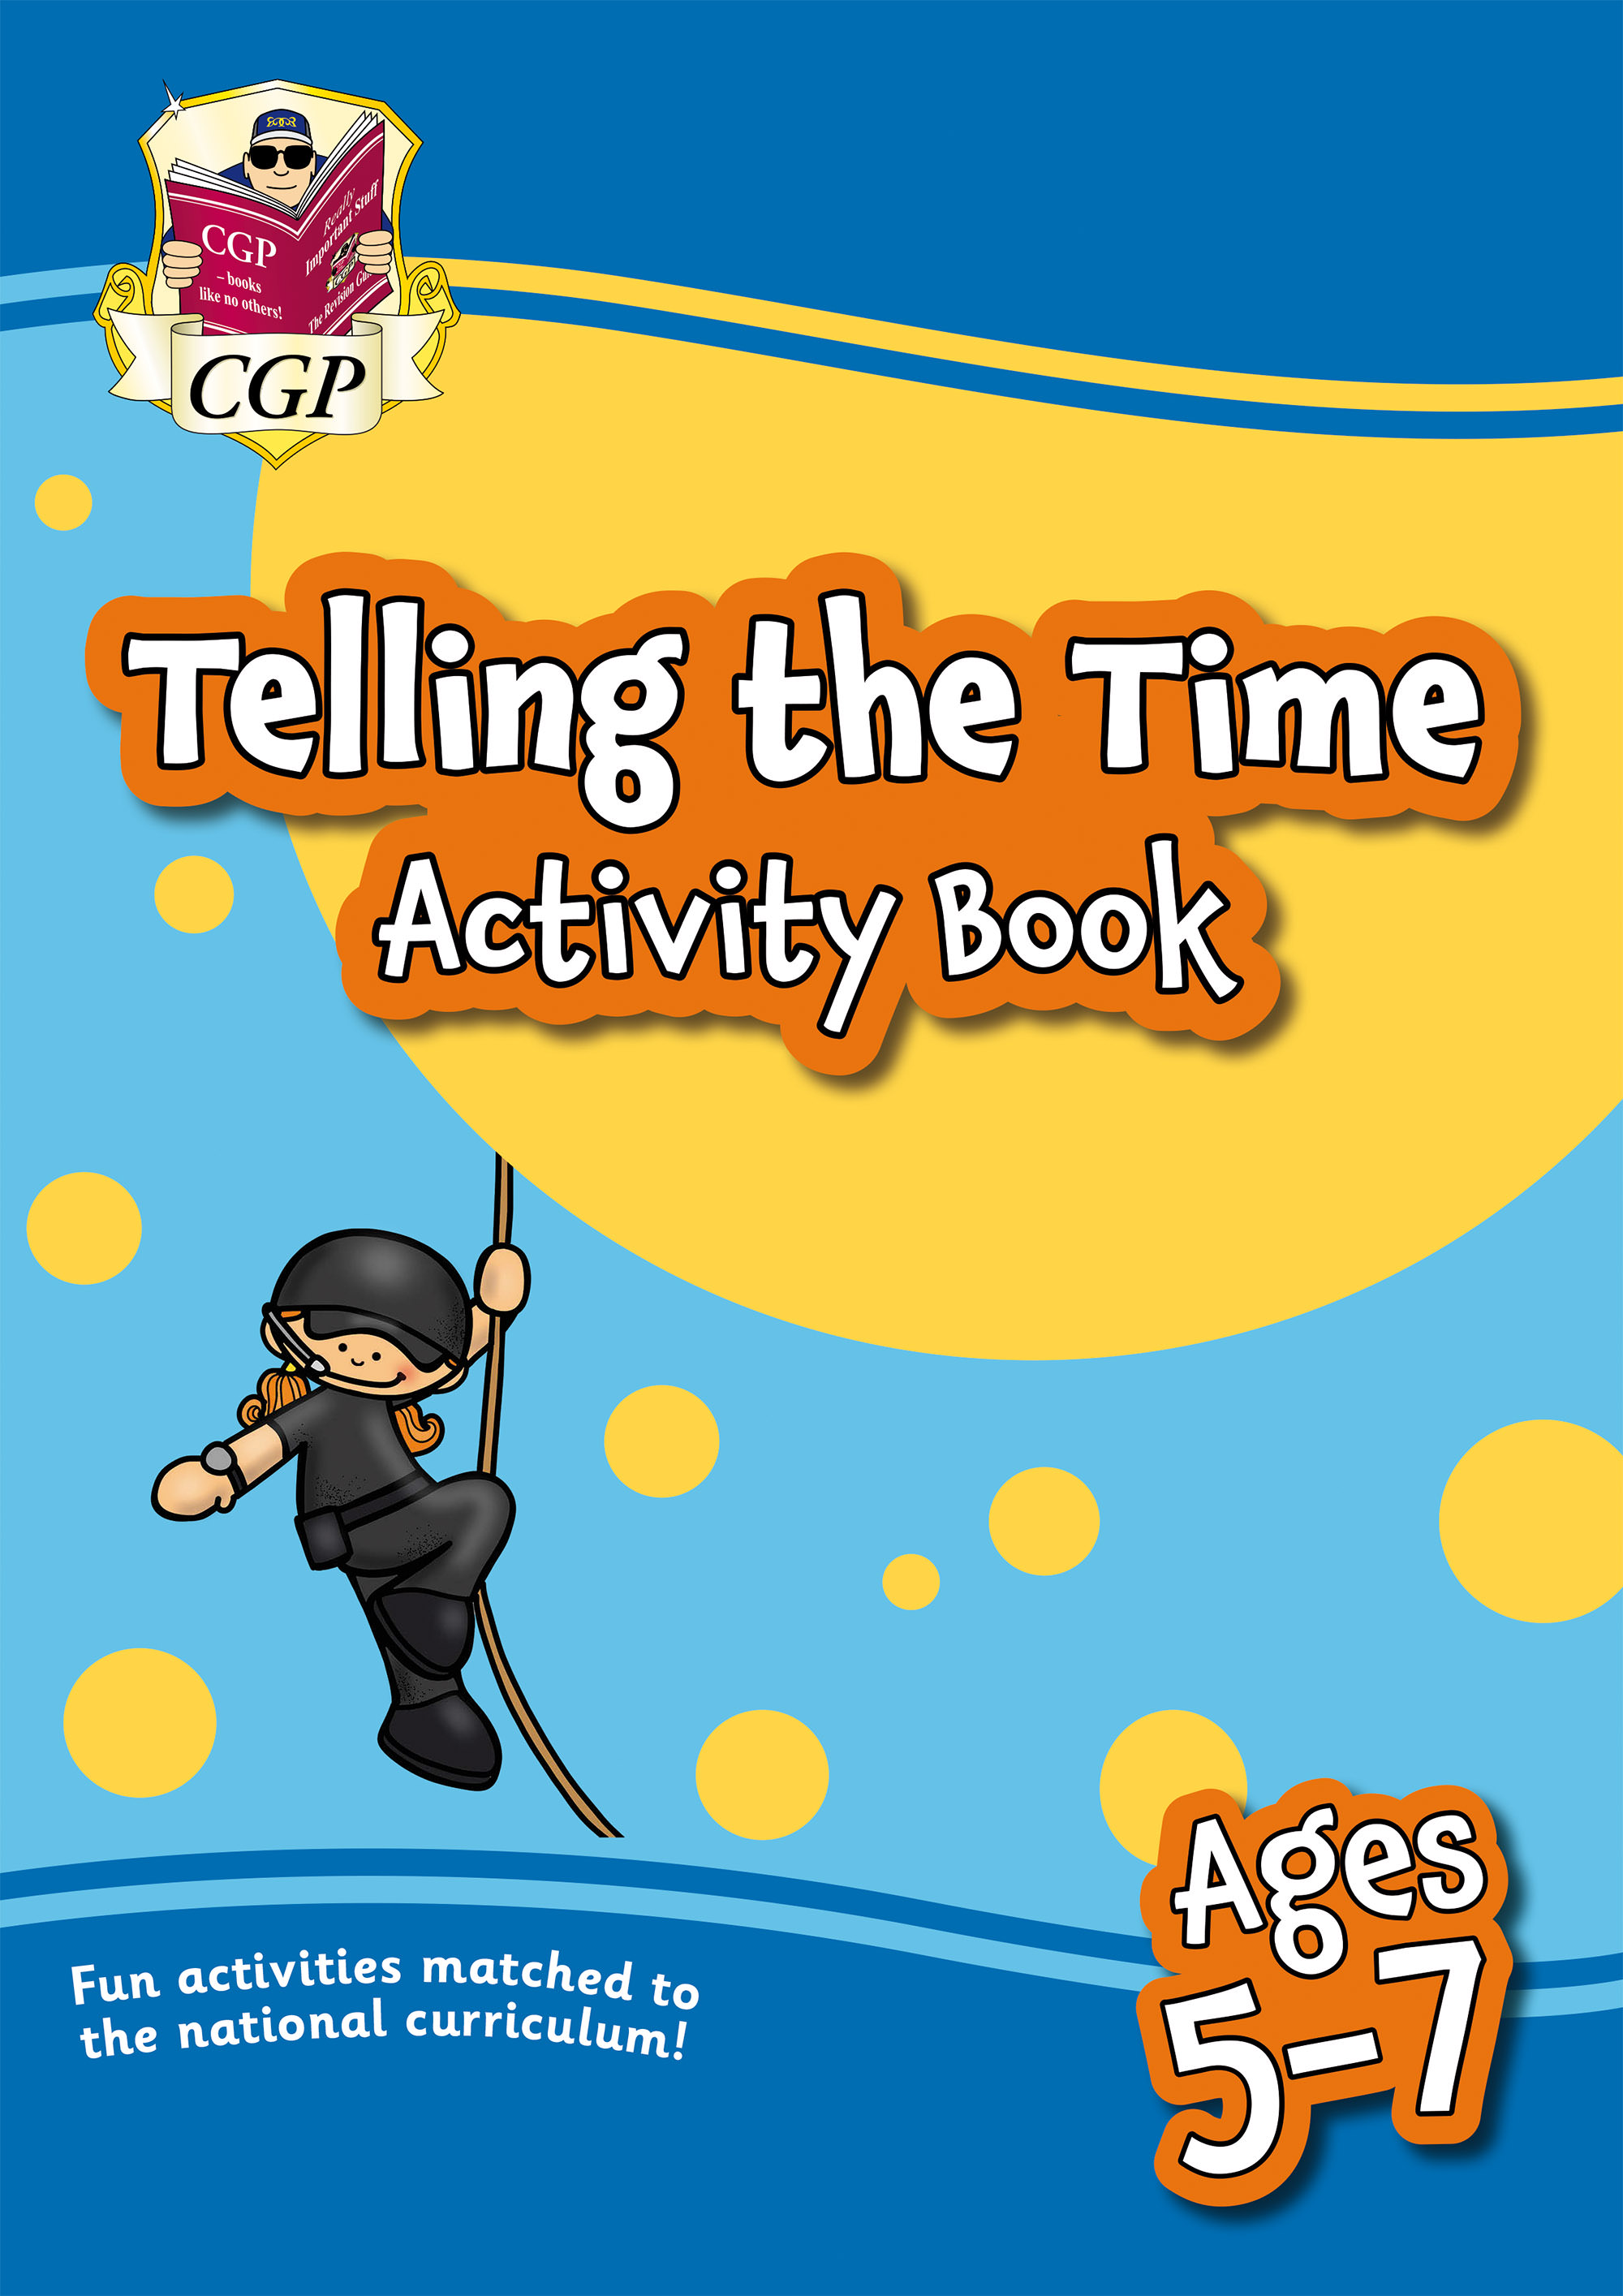 MPFTI11D - New Telling the Time Activity Book for Ages 5-7: Perfect for Catch-Up and Home Learning O